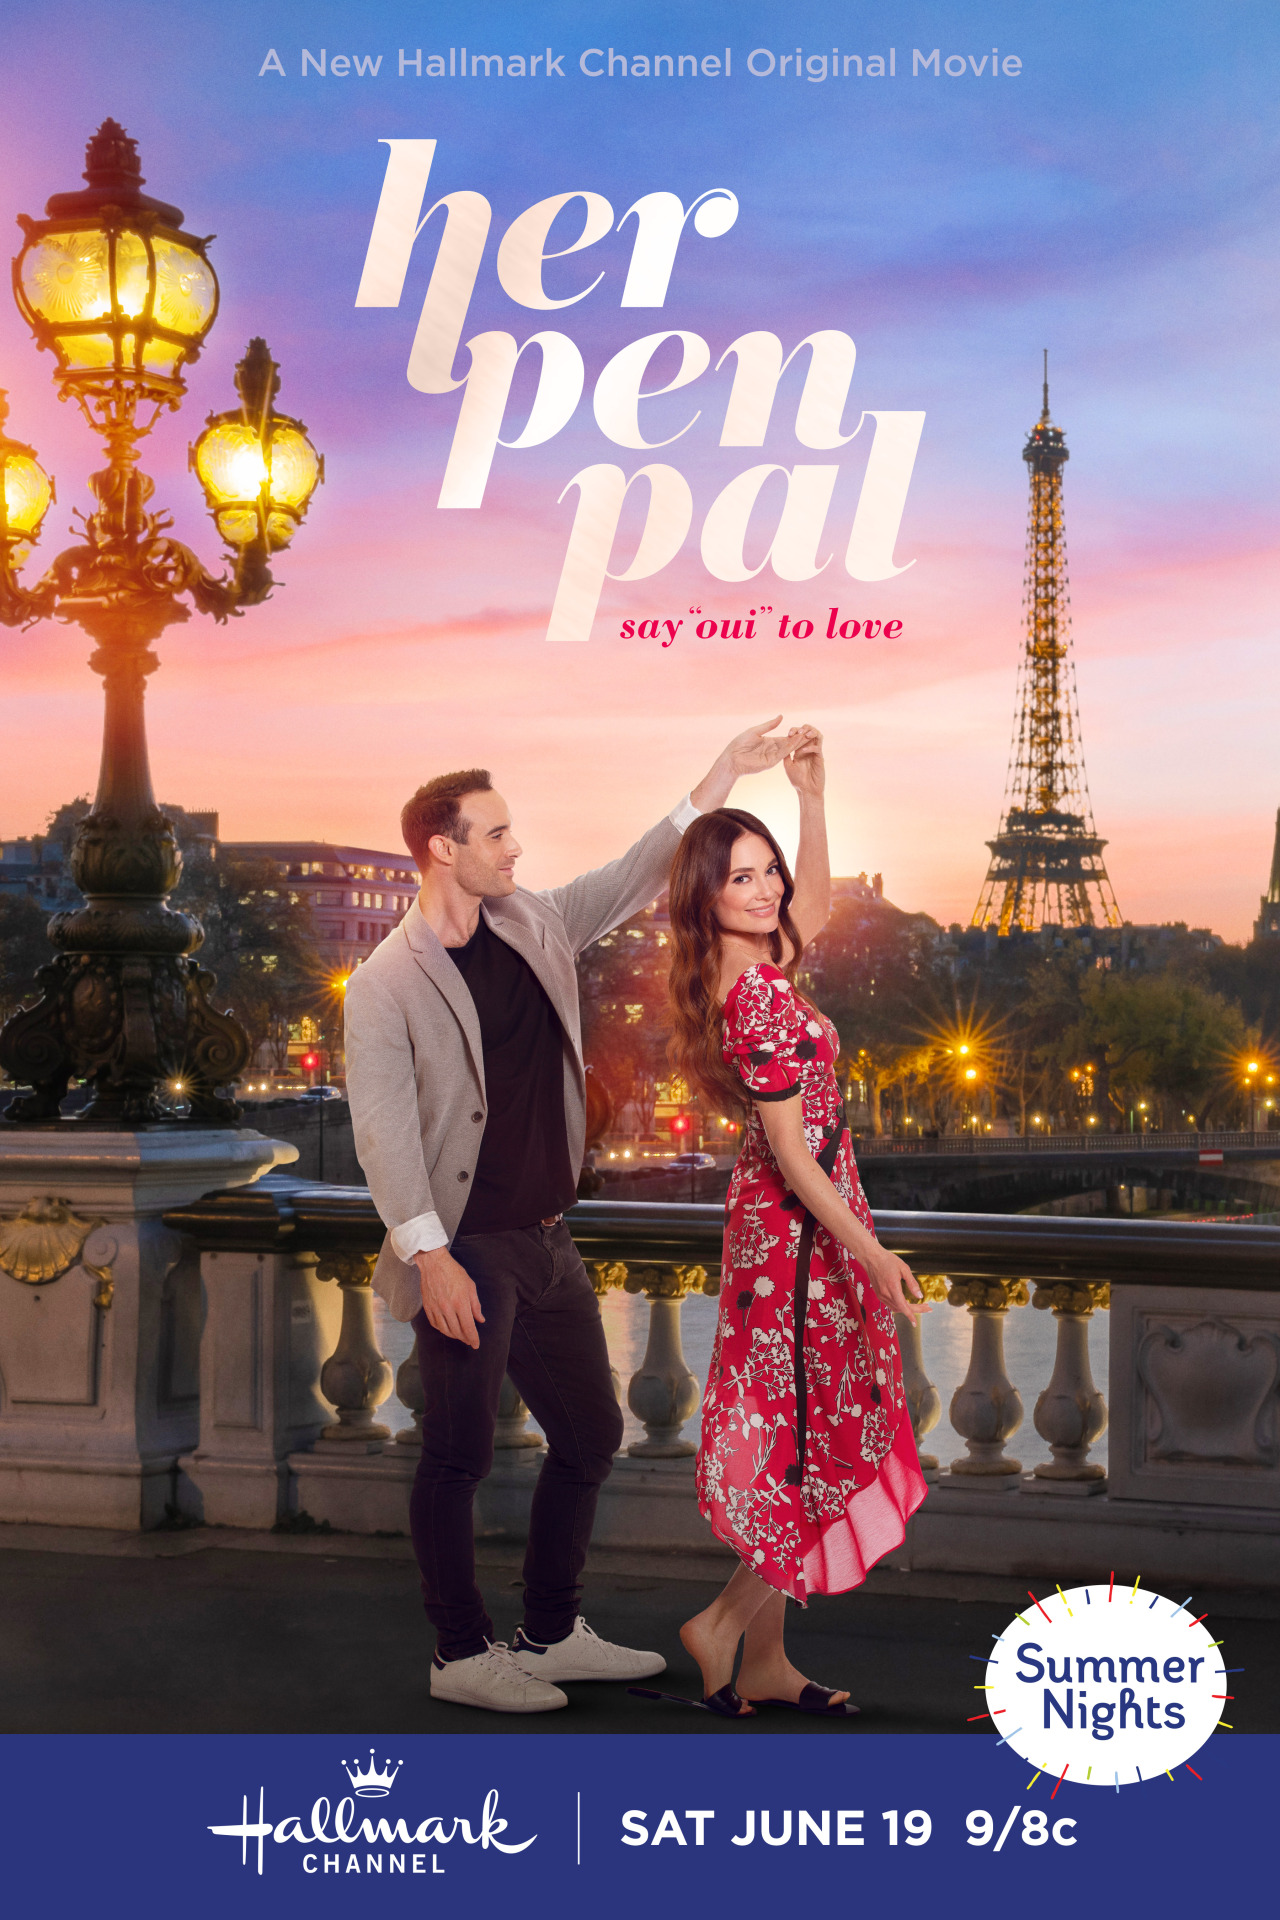 """Poster for Hallmark film Her Pen Pal released Juny 19th, 2021. The poster features Mallory Jansen in a red dress with a white and black floral pattern being twirled by Joshua Sasse, wearing a black shirt, tan blazer, black jeans, and white sneakers. They are dancing on a bridge in front of a backdrop of Paris at sunset with the Eiffle Tower in the background to the right and a lantern on the bridge in the foreground to the left. The image is overlaid with the title """"her pen pal"""" with the subtitle """"say 'oui' to love."""" In the bottom right hand corner, there is a white oval with multi-colored lines shooting out of it that say """"Summer Nights."""" Flavorlab Sound provided full service audio post production for the film."""